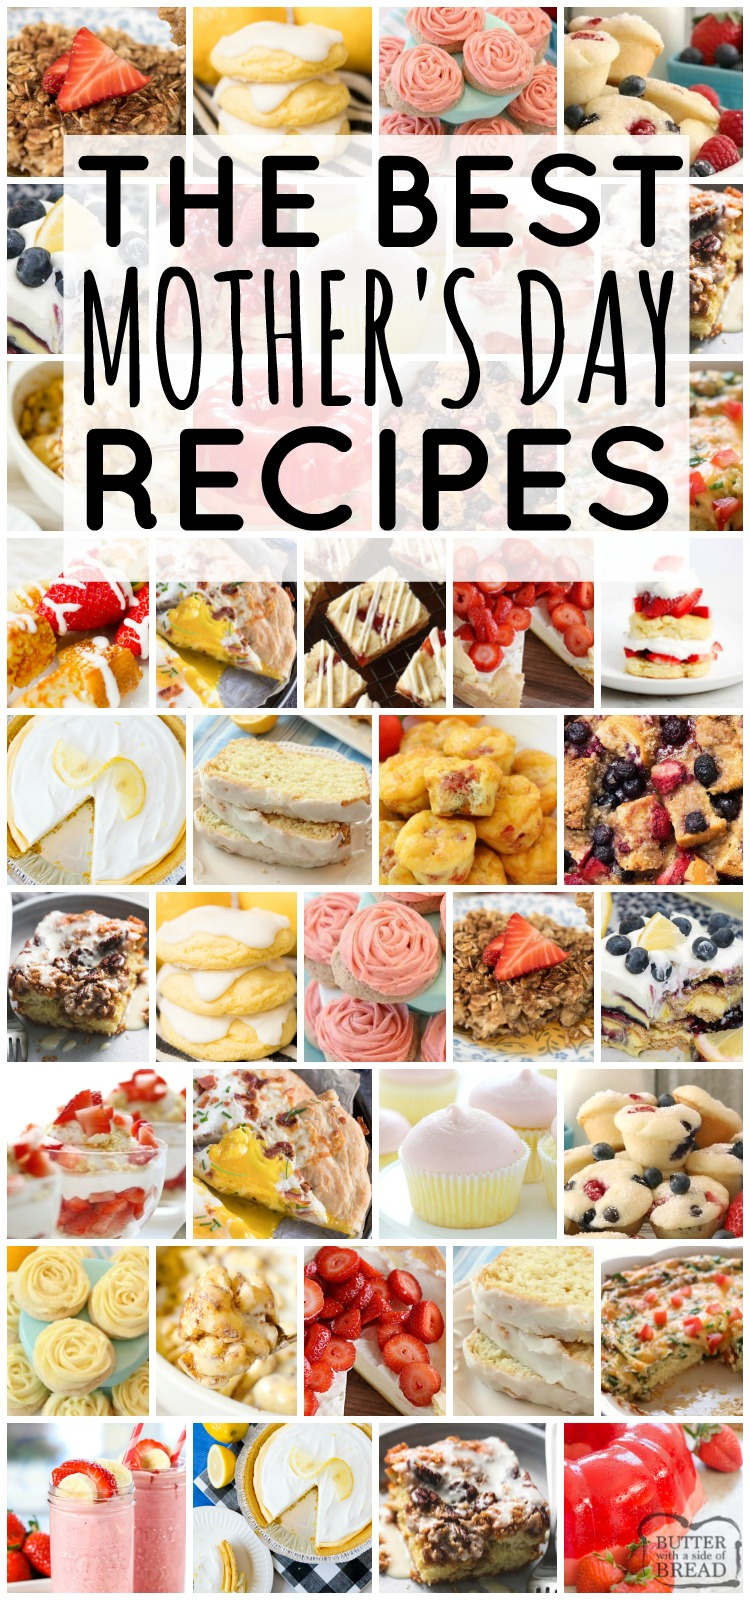 Mother's Day recipes perfect for brunch! Everything from spinach quiche to lemon ice box pie- tons of recipes with fresh berries and lemon. Easy to make, crowd pleasing recipes for Mother's Day.#recipes #mothersday #brunch #lemon #strawberry #food from BUTTER WITH A SIDE OF BREAD